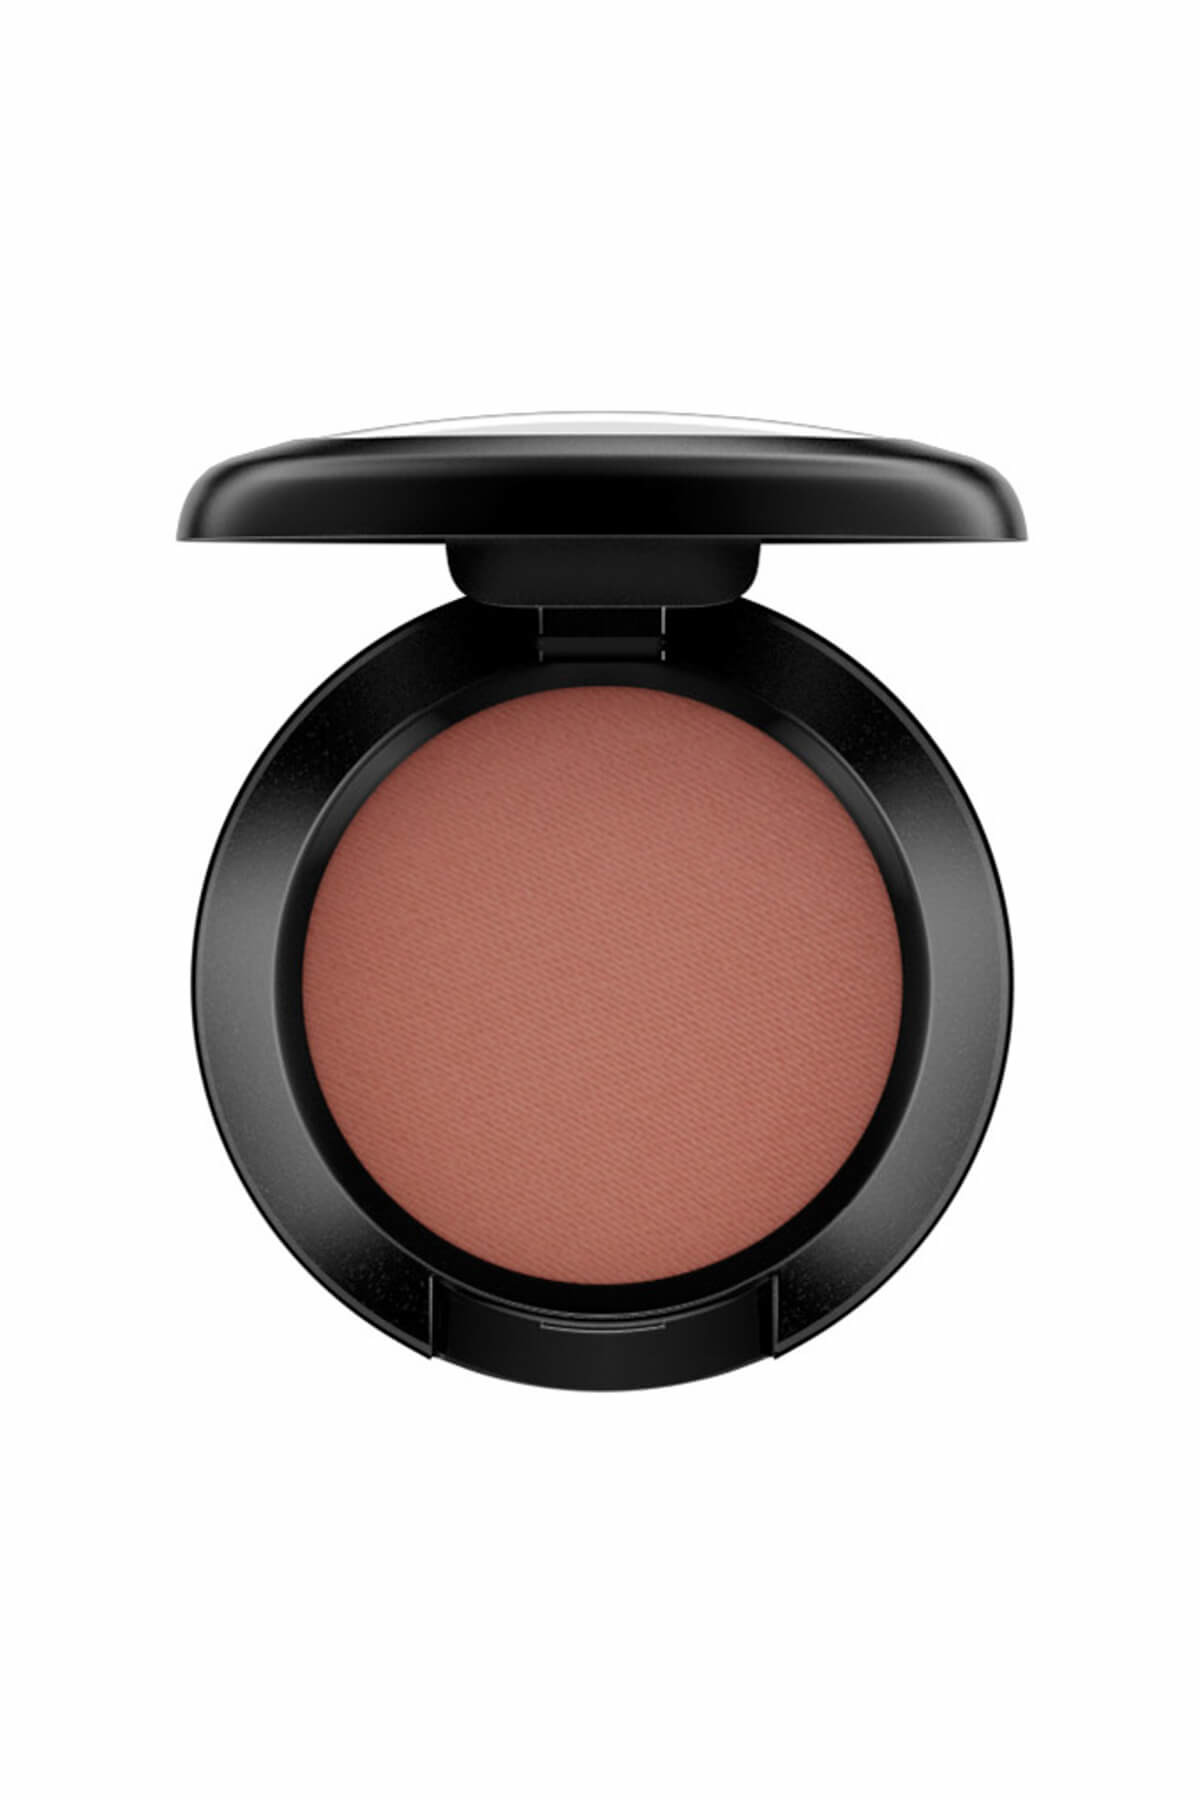 M.A.C Göz Farı - Eye Shadow Brown Script 1.5 g 773602134045 1